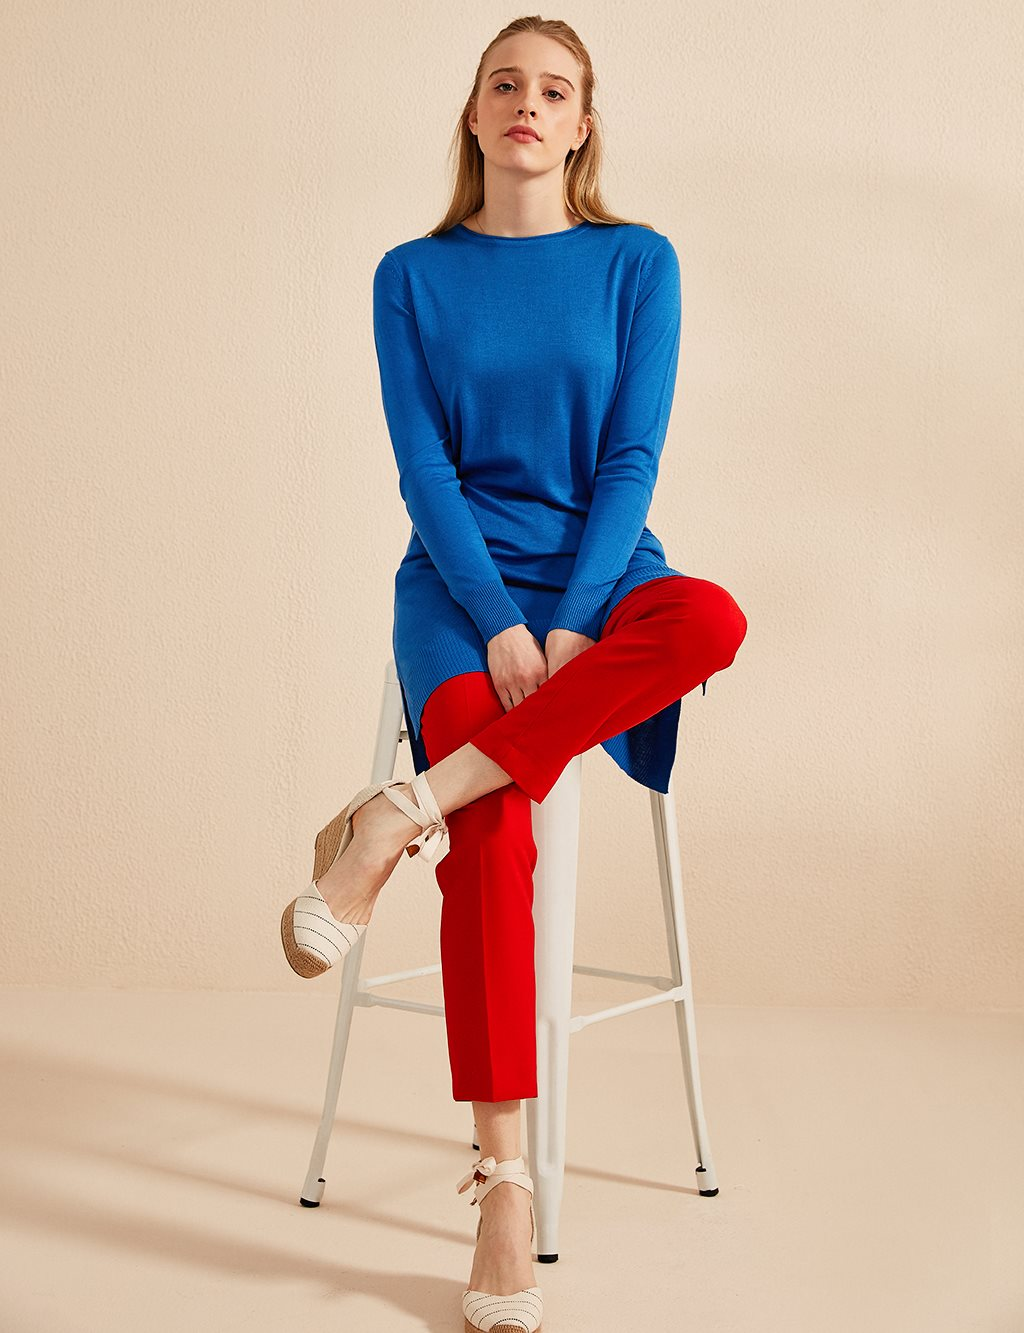 KYR Skinny Leg Pants B20 79006 Red